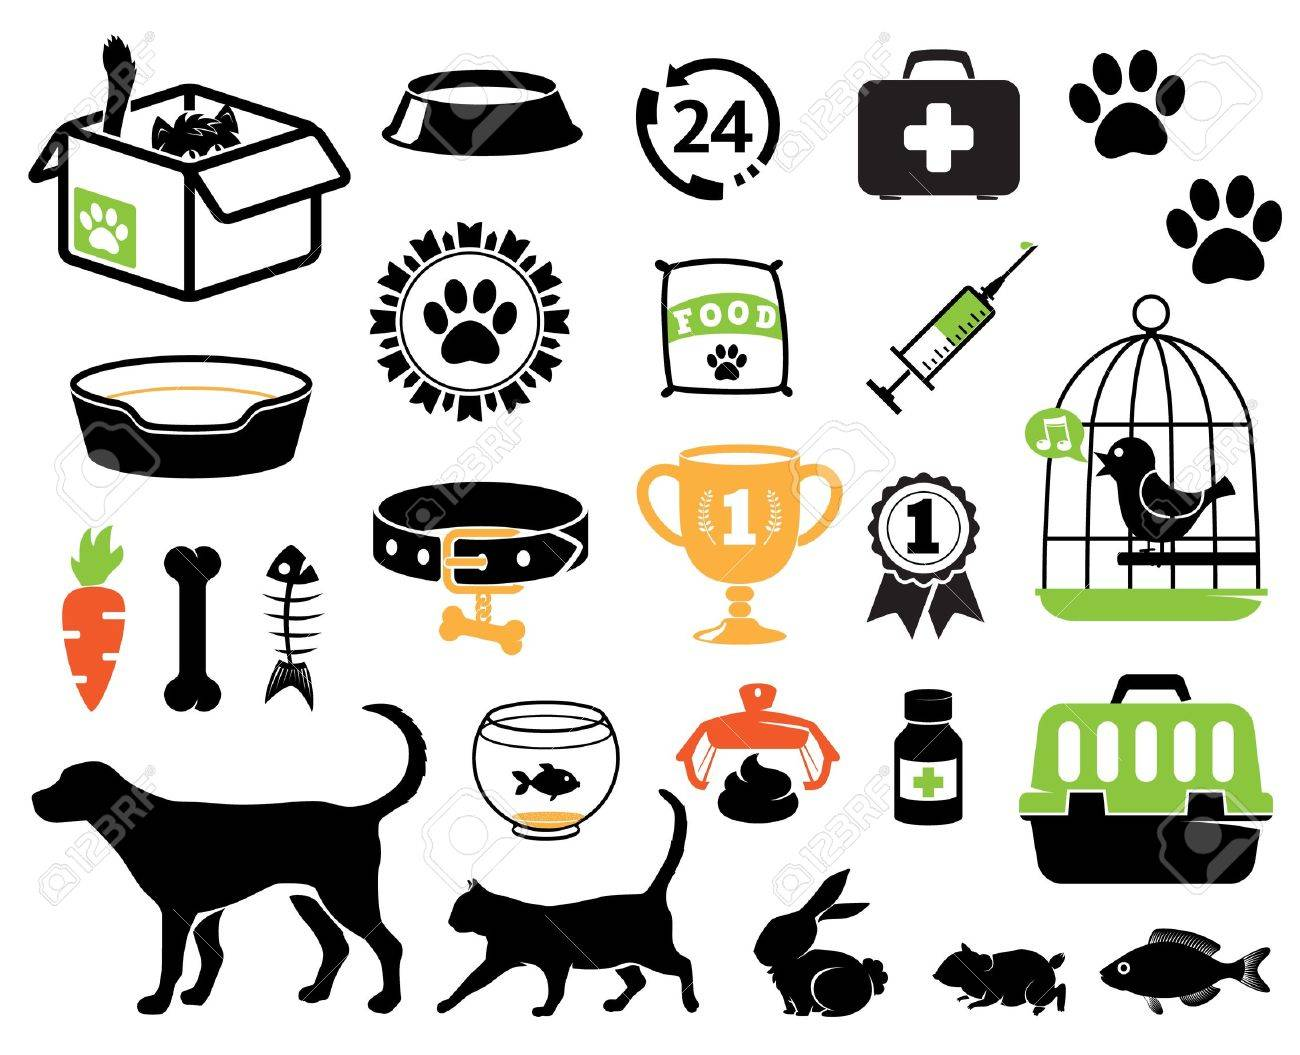 Pet icons collection - 14772150